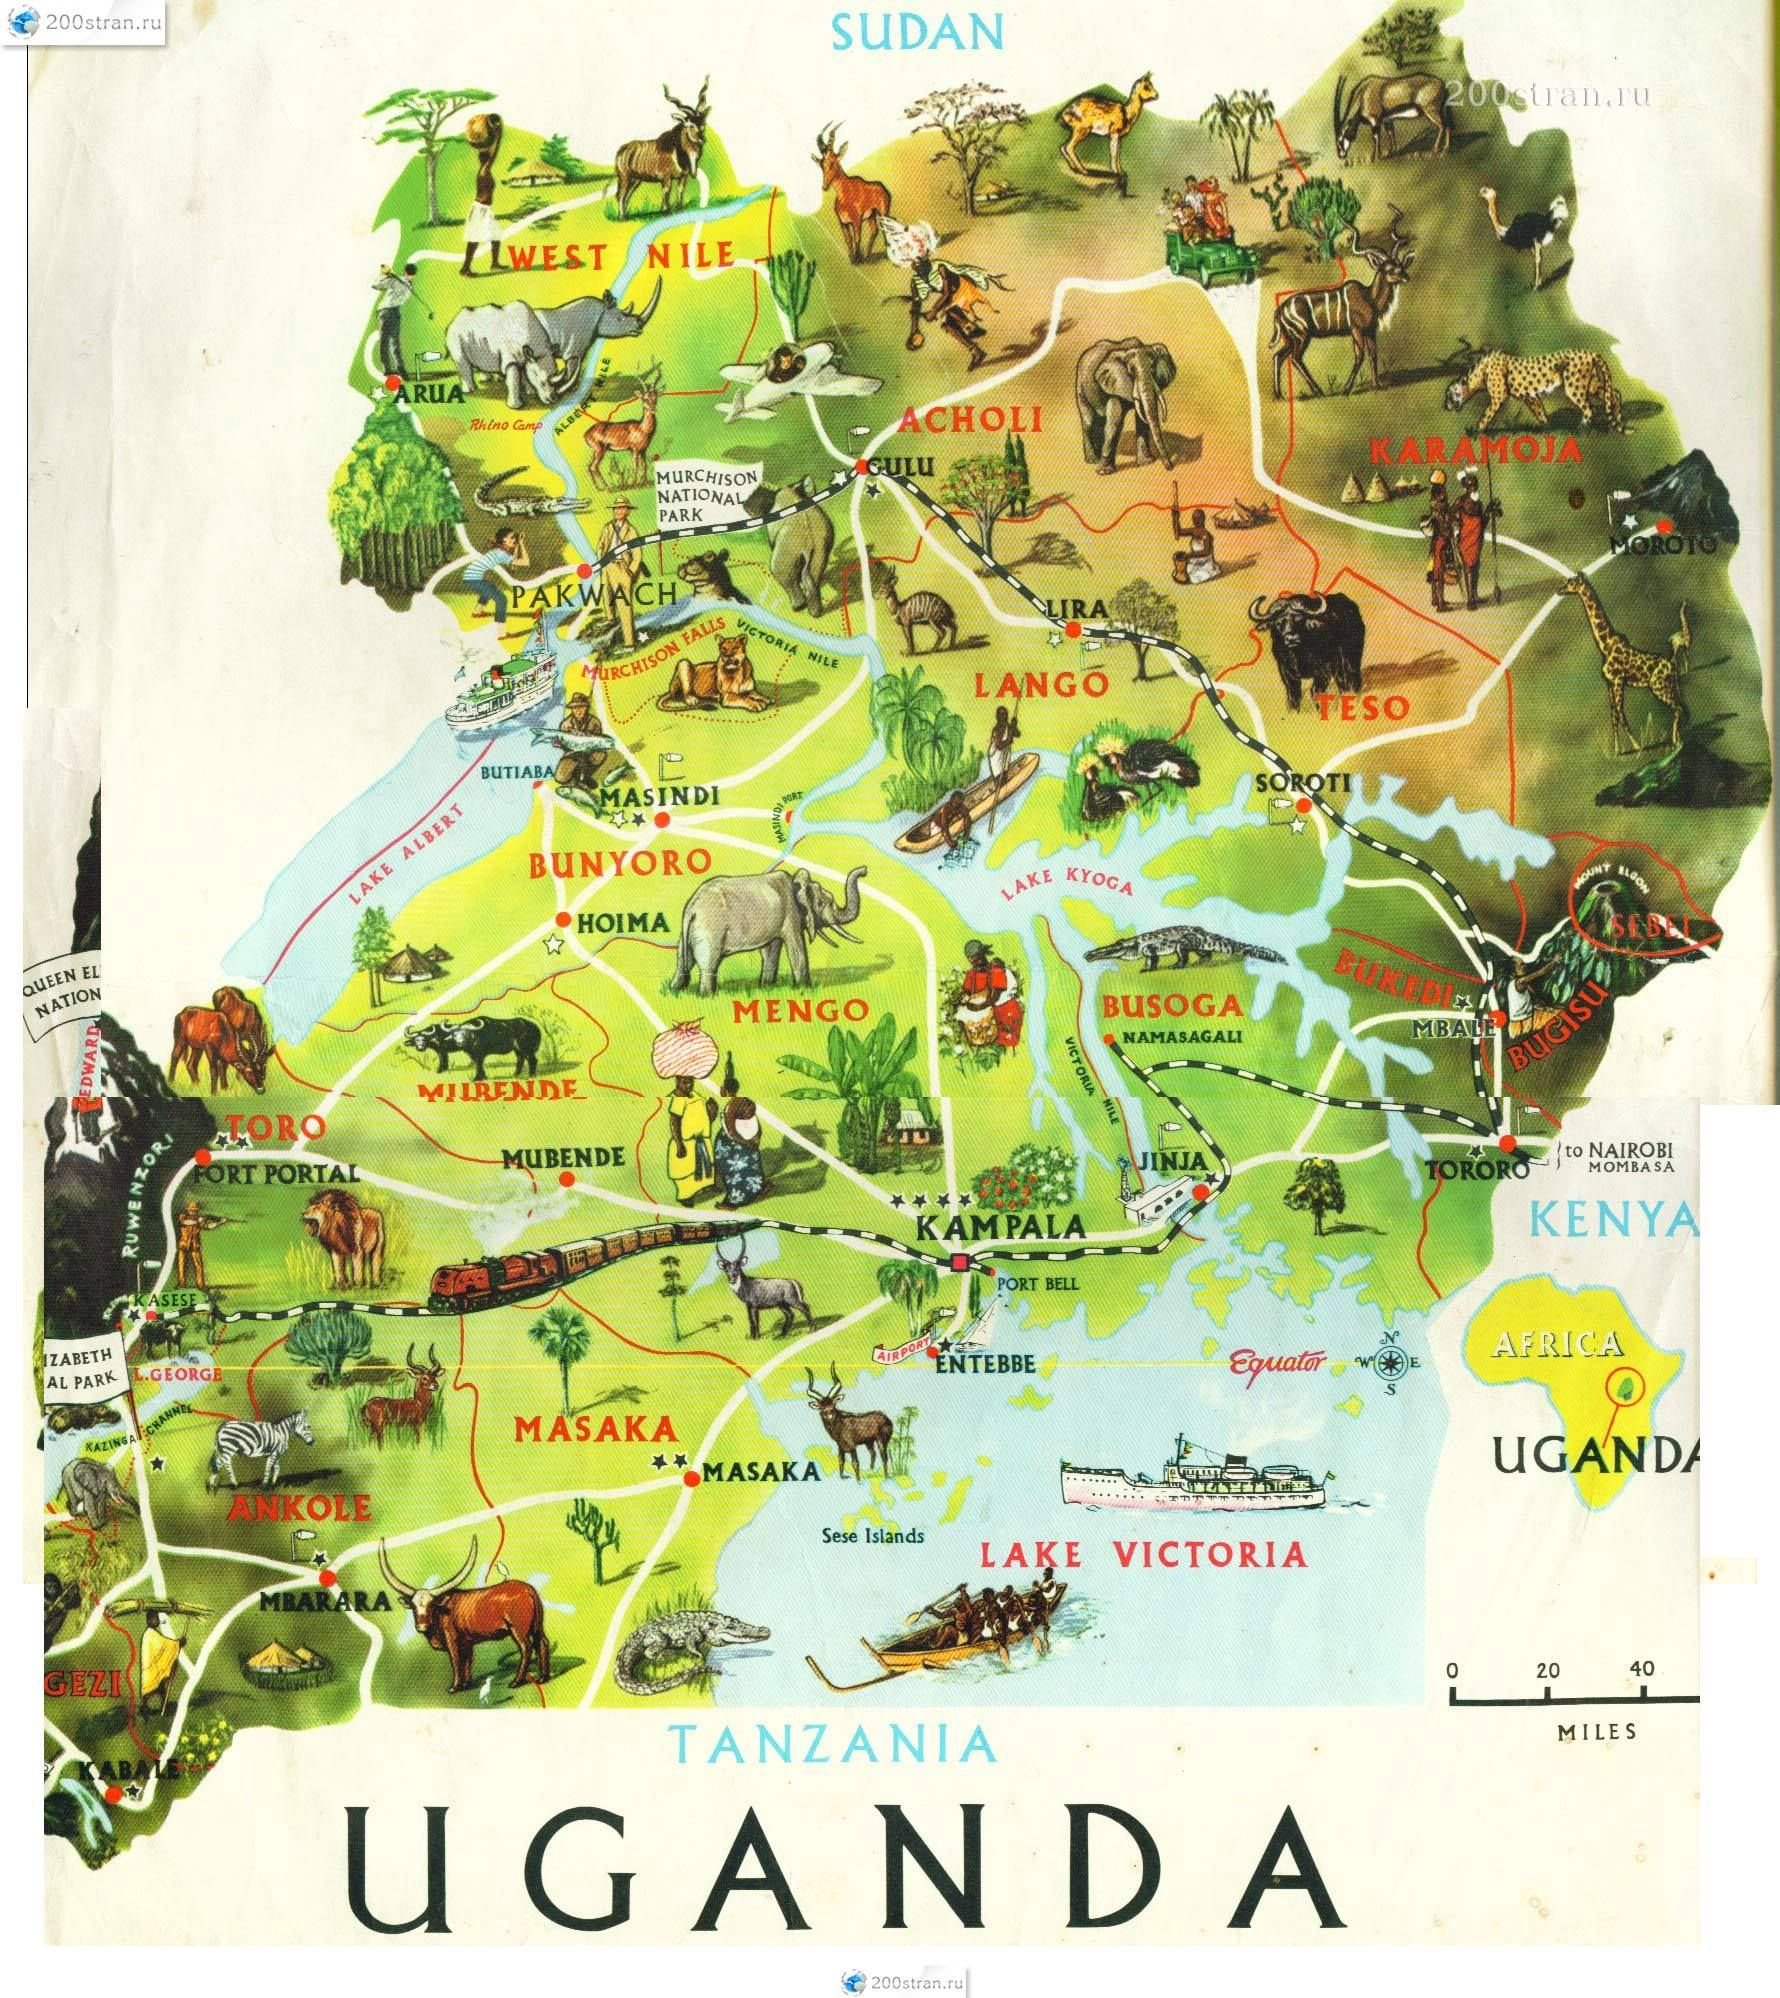 UGANDA Words Cant Express My Excitement I Am Looking - Africa map uganda